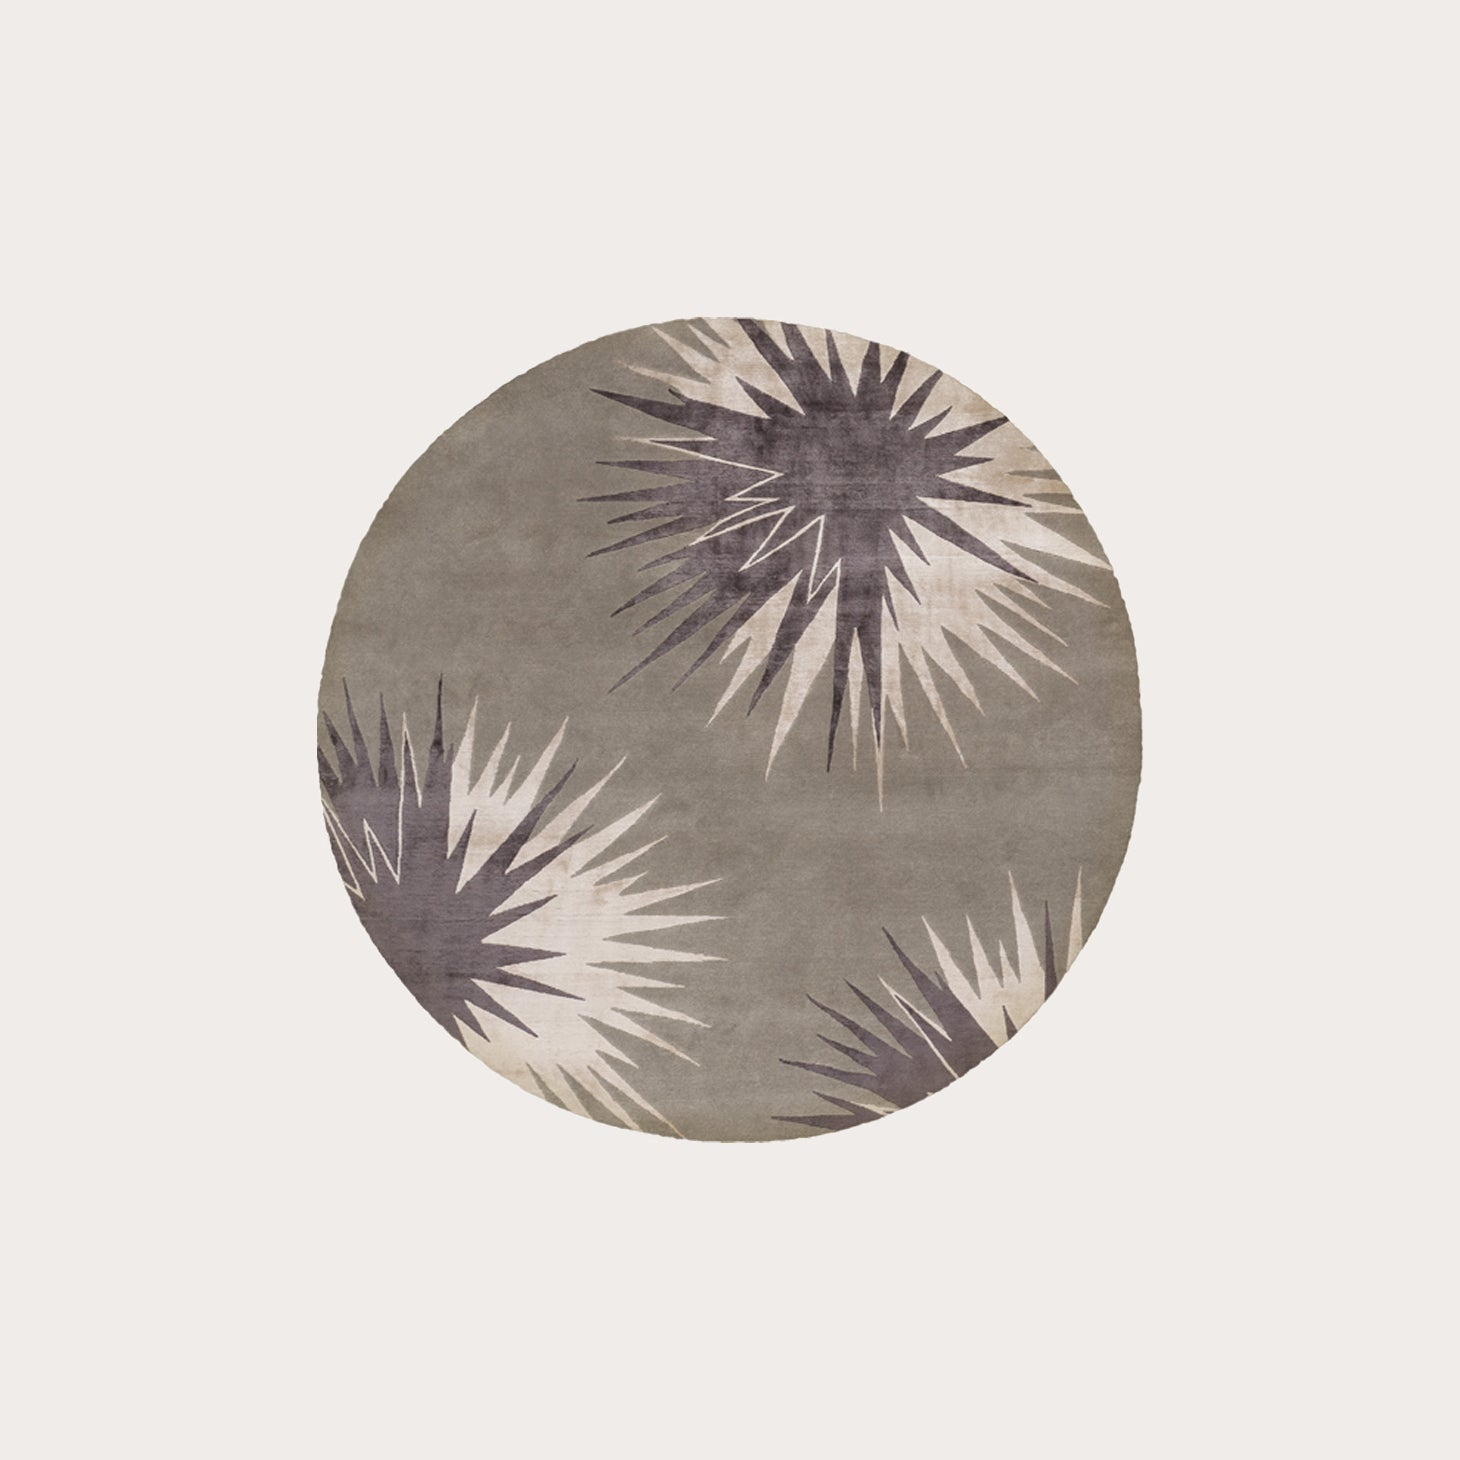 Thistle Pewter Round Rugs Vivienne Westwood Designer Furniture Sku: 391-150-11470